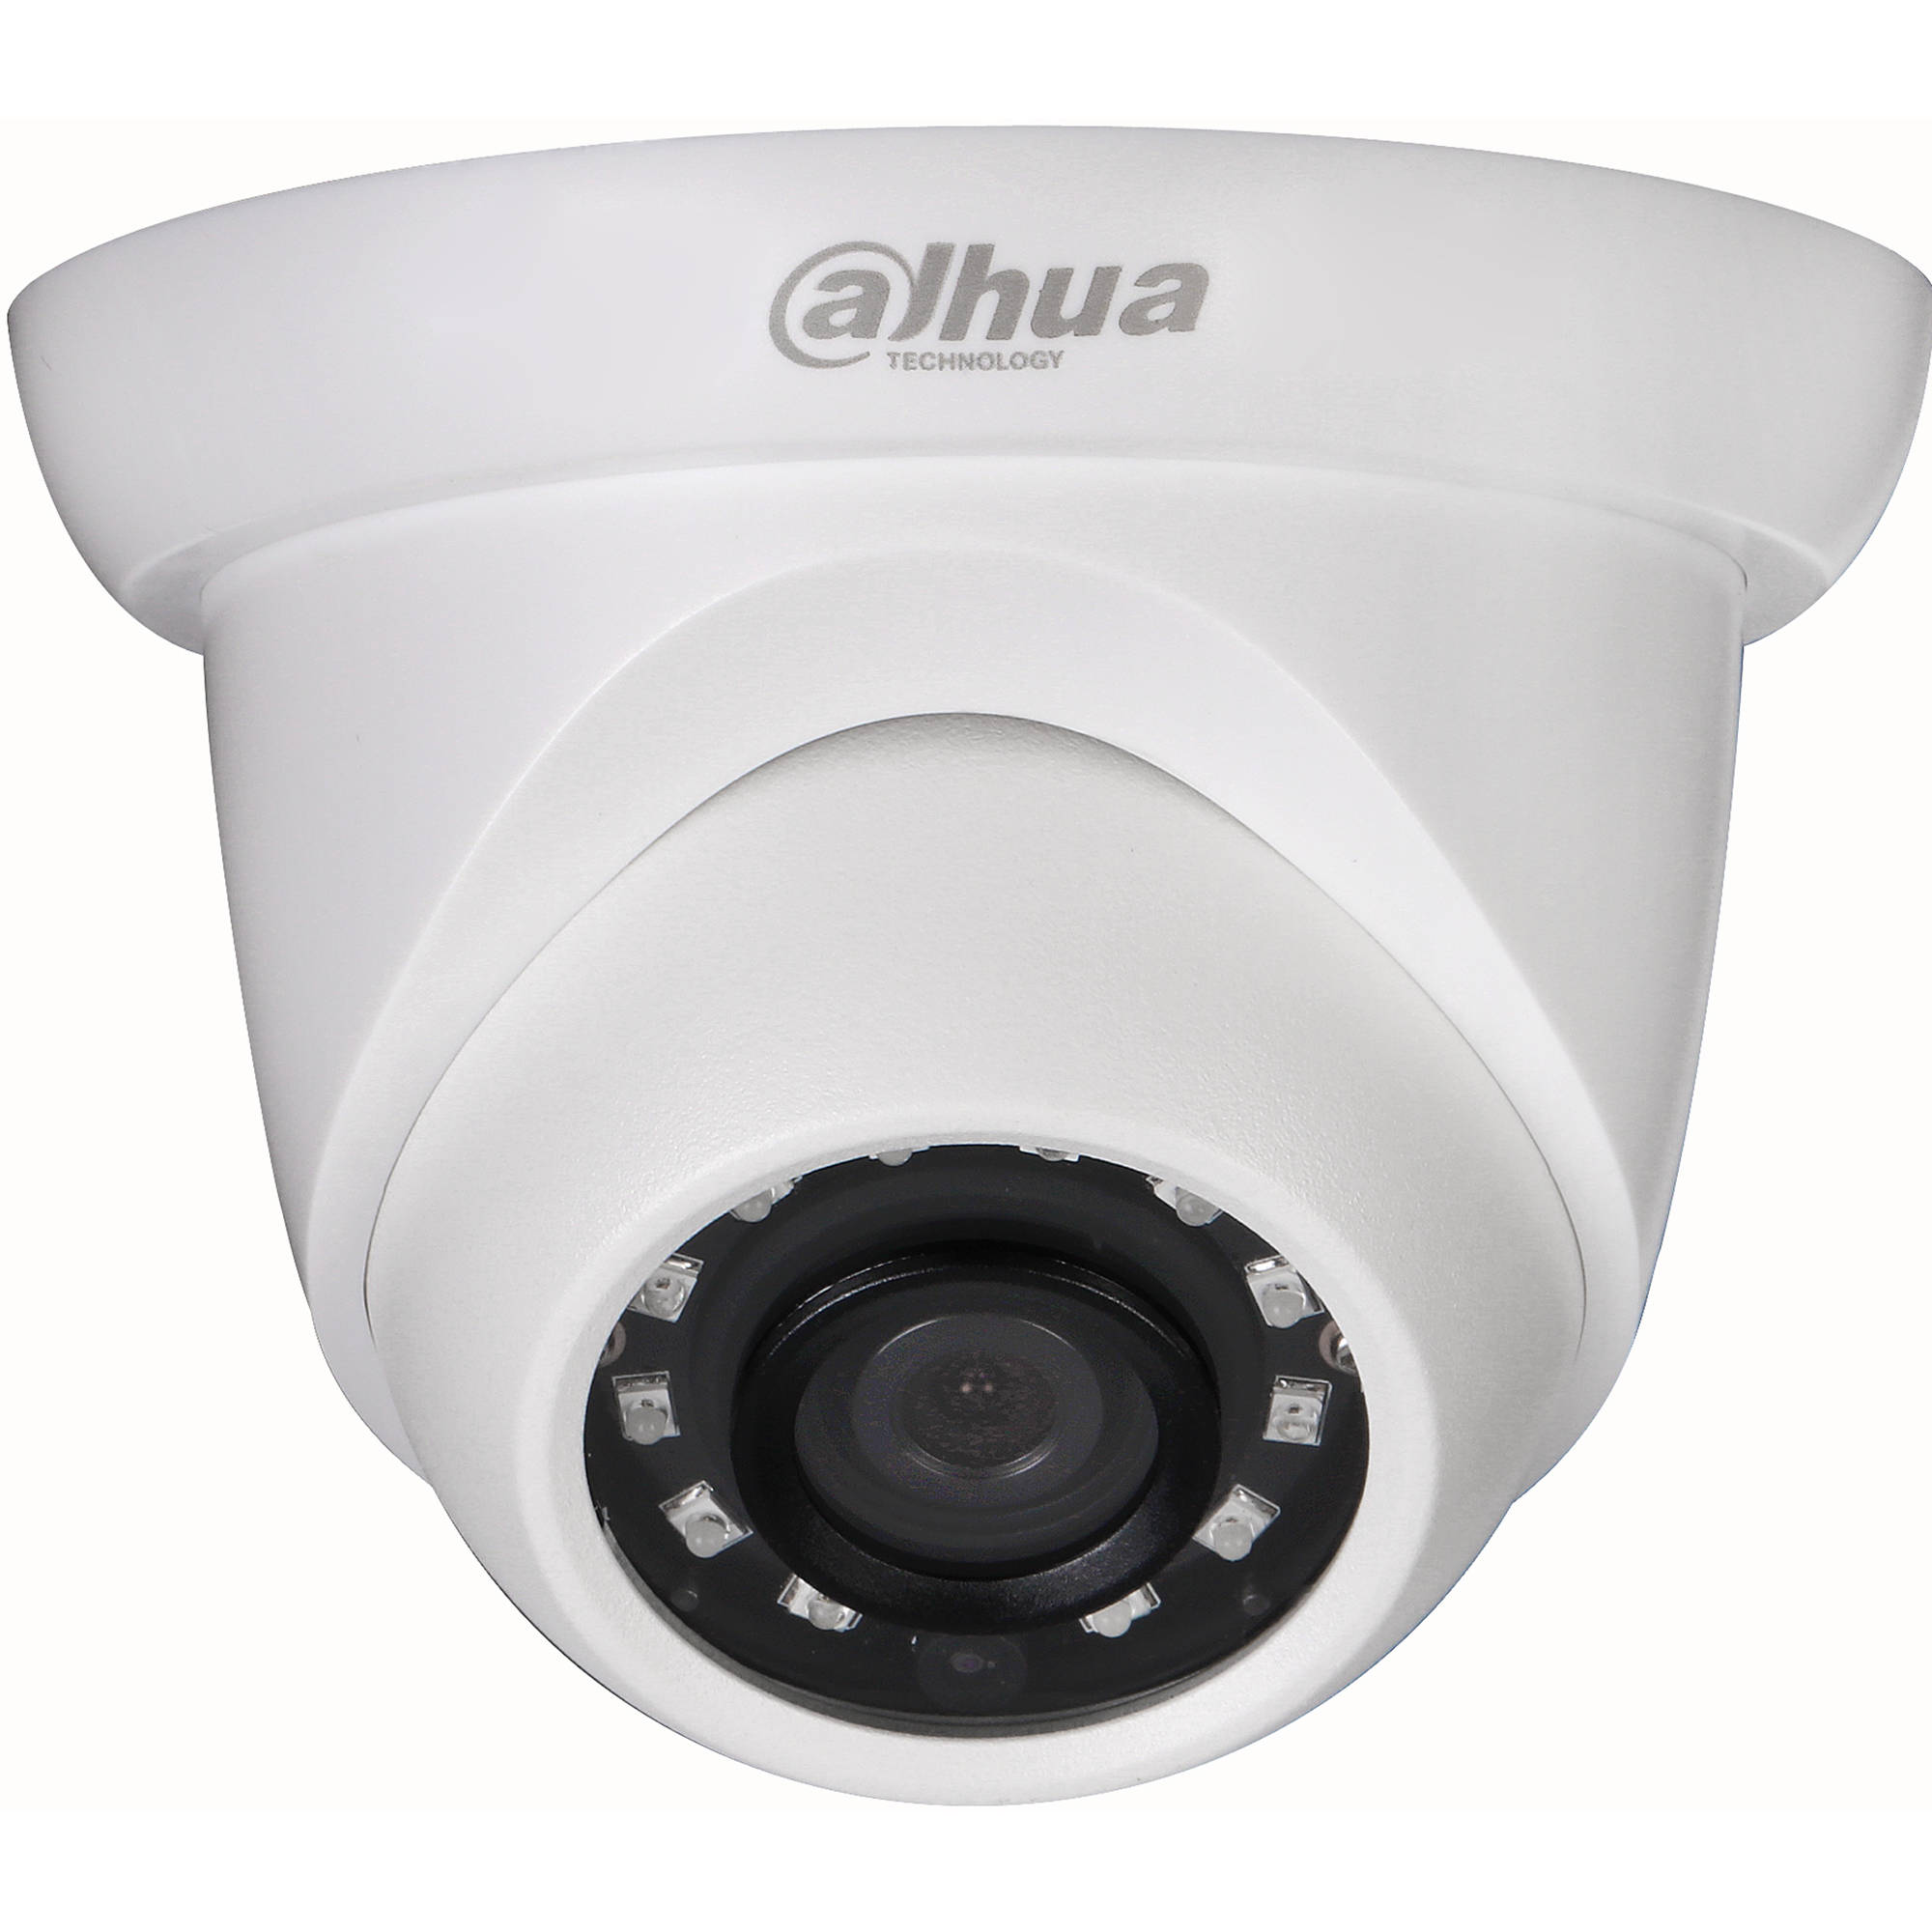 Dahua Technology Pro Series N51BI23 5MP Outdoor Network Turret Camera with  Night Vision & 3 6mm Lens